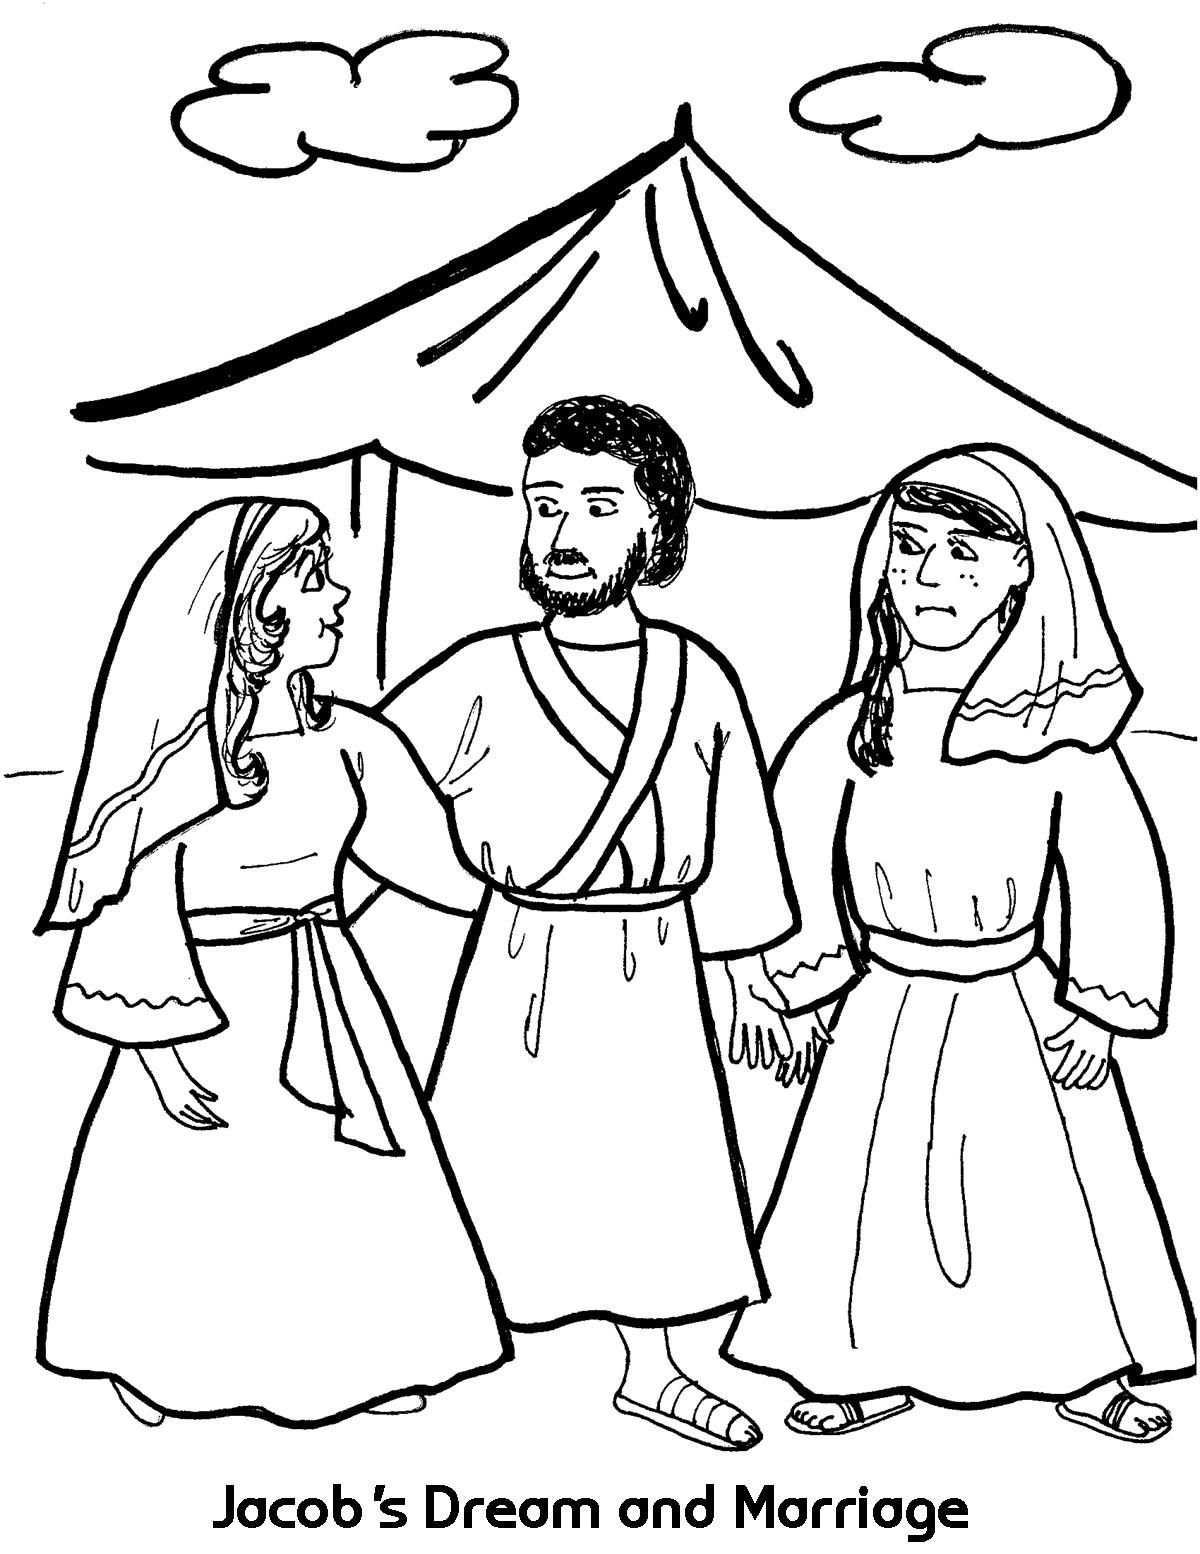 coloring bible story pictures for sunday school free palm sunday coloring pages bible lessons games and coloring pictures bible for school sunday story